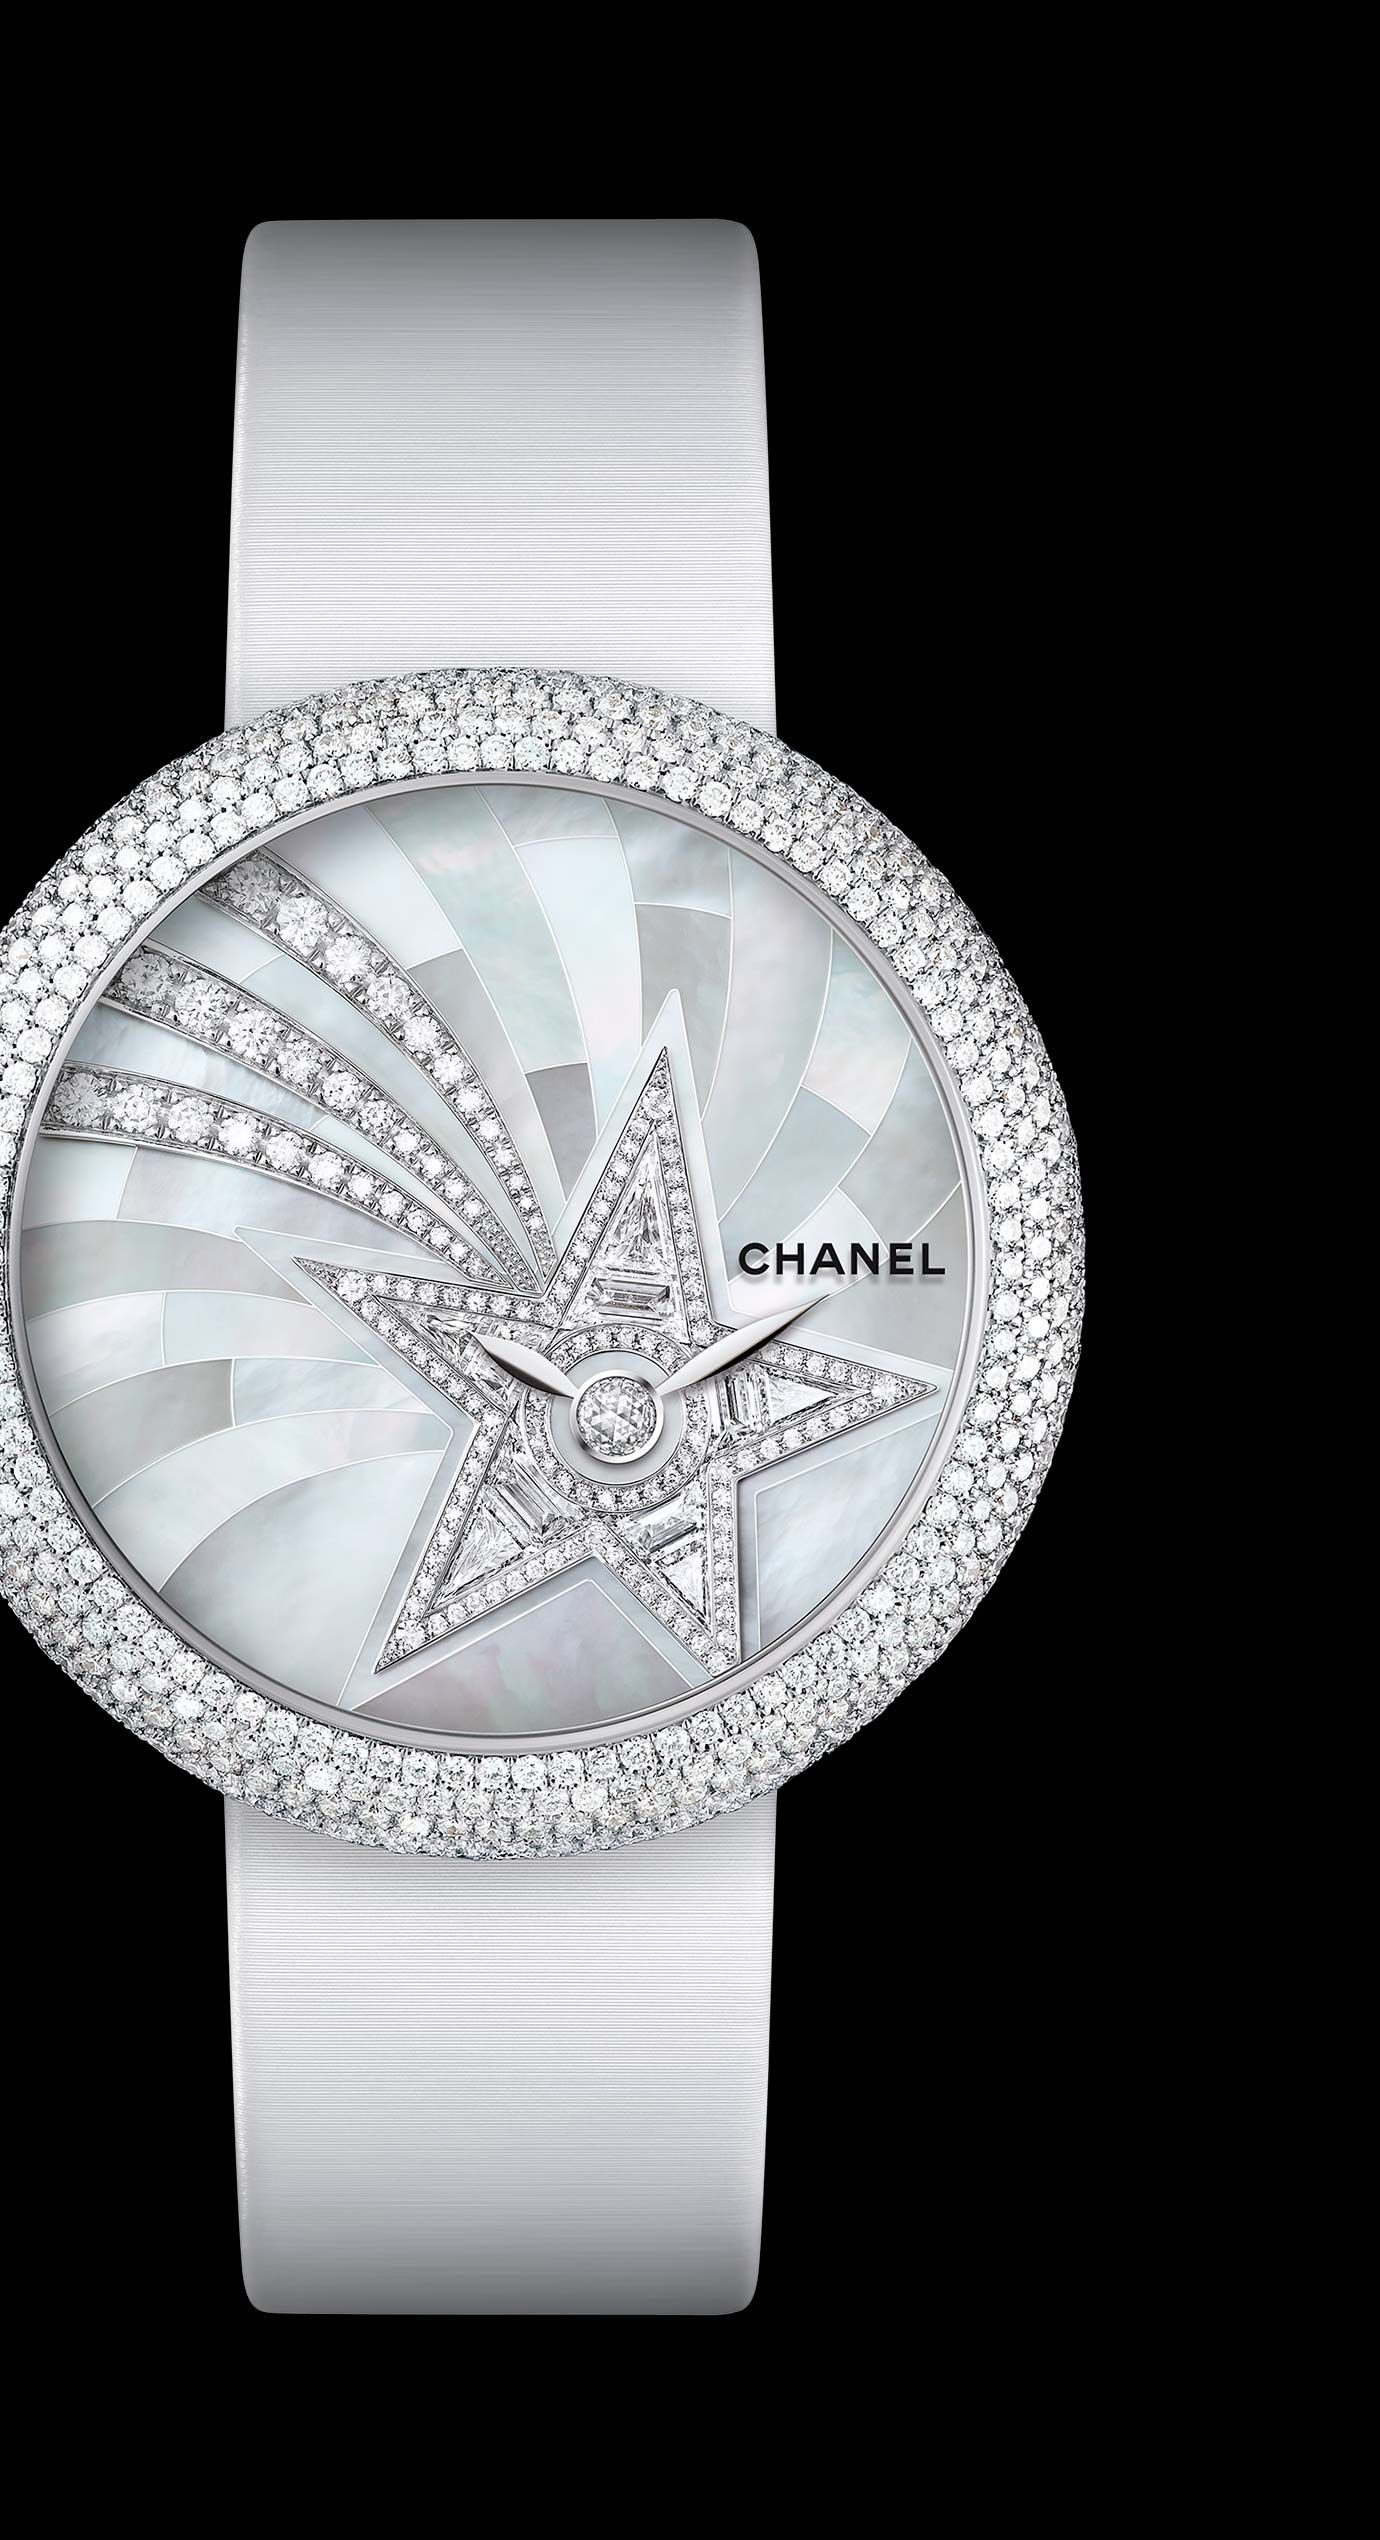 2019 year for women- Mademoiselle chanel prive watch craftsmanship